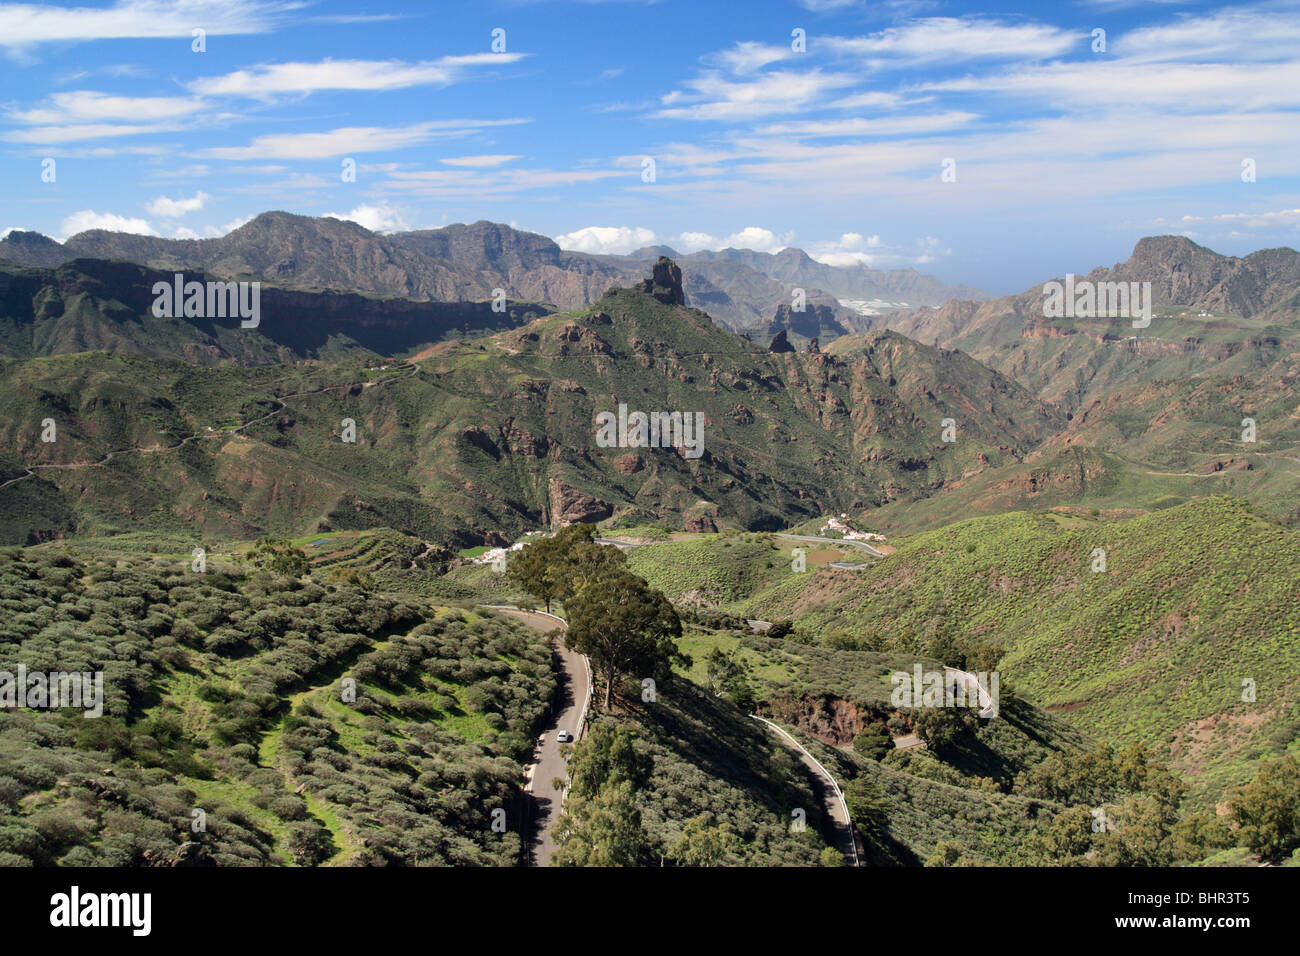 View towards Roque Bentayga near Tejeda from ridge footpath near Cruz de Tejeda (1500m) on Gran Canaria. Stock Photo